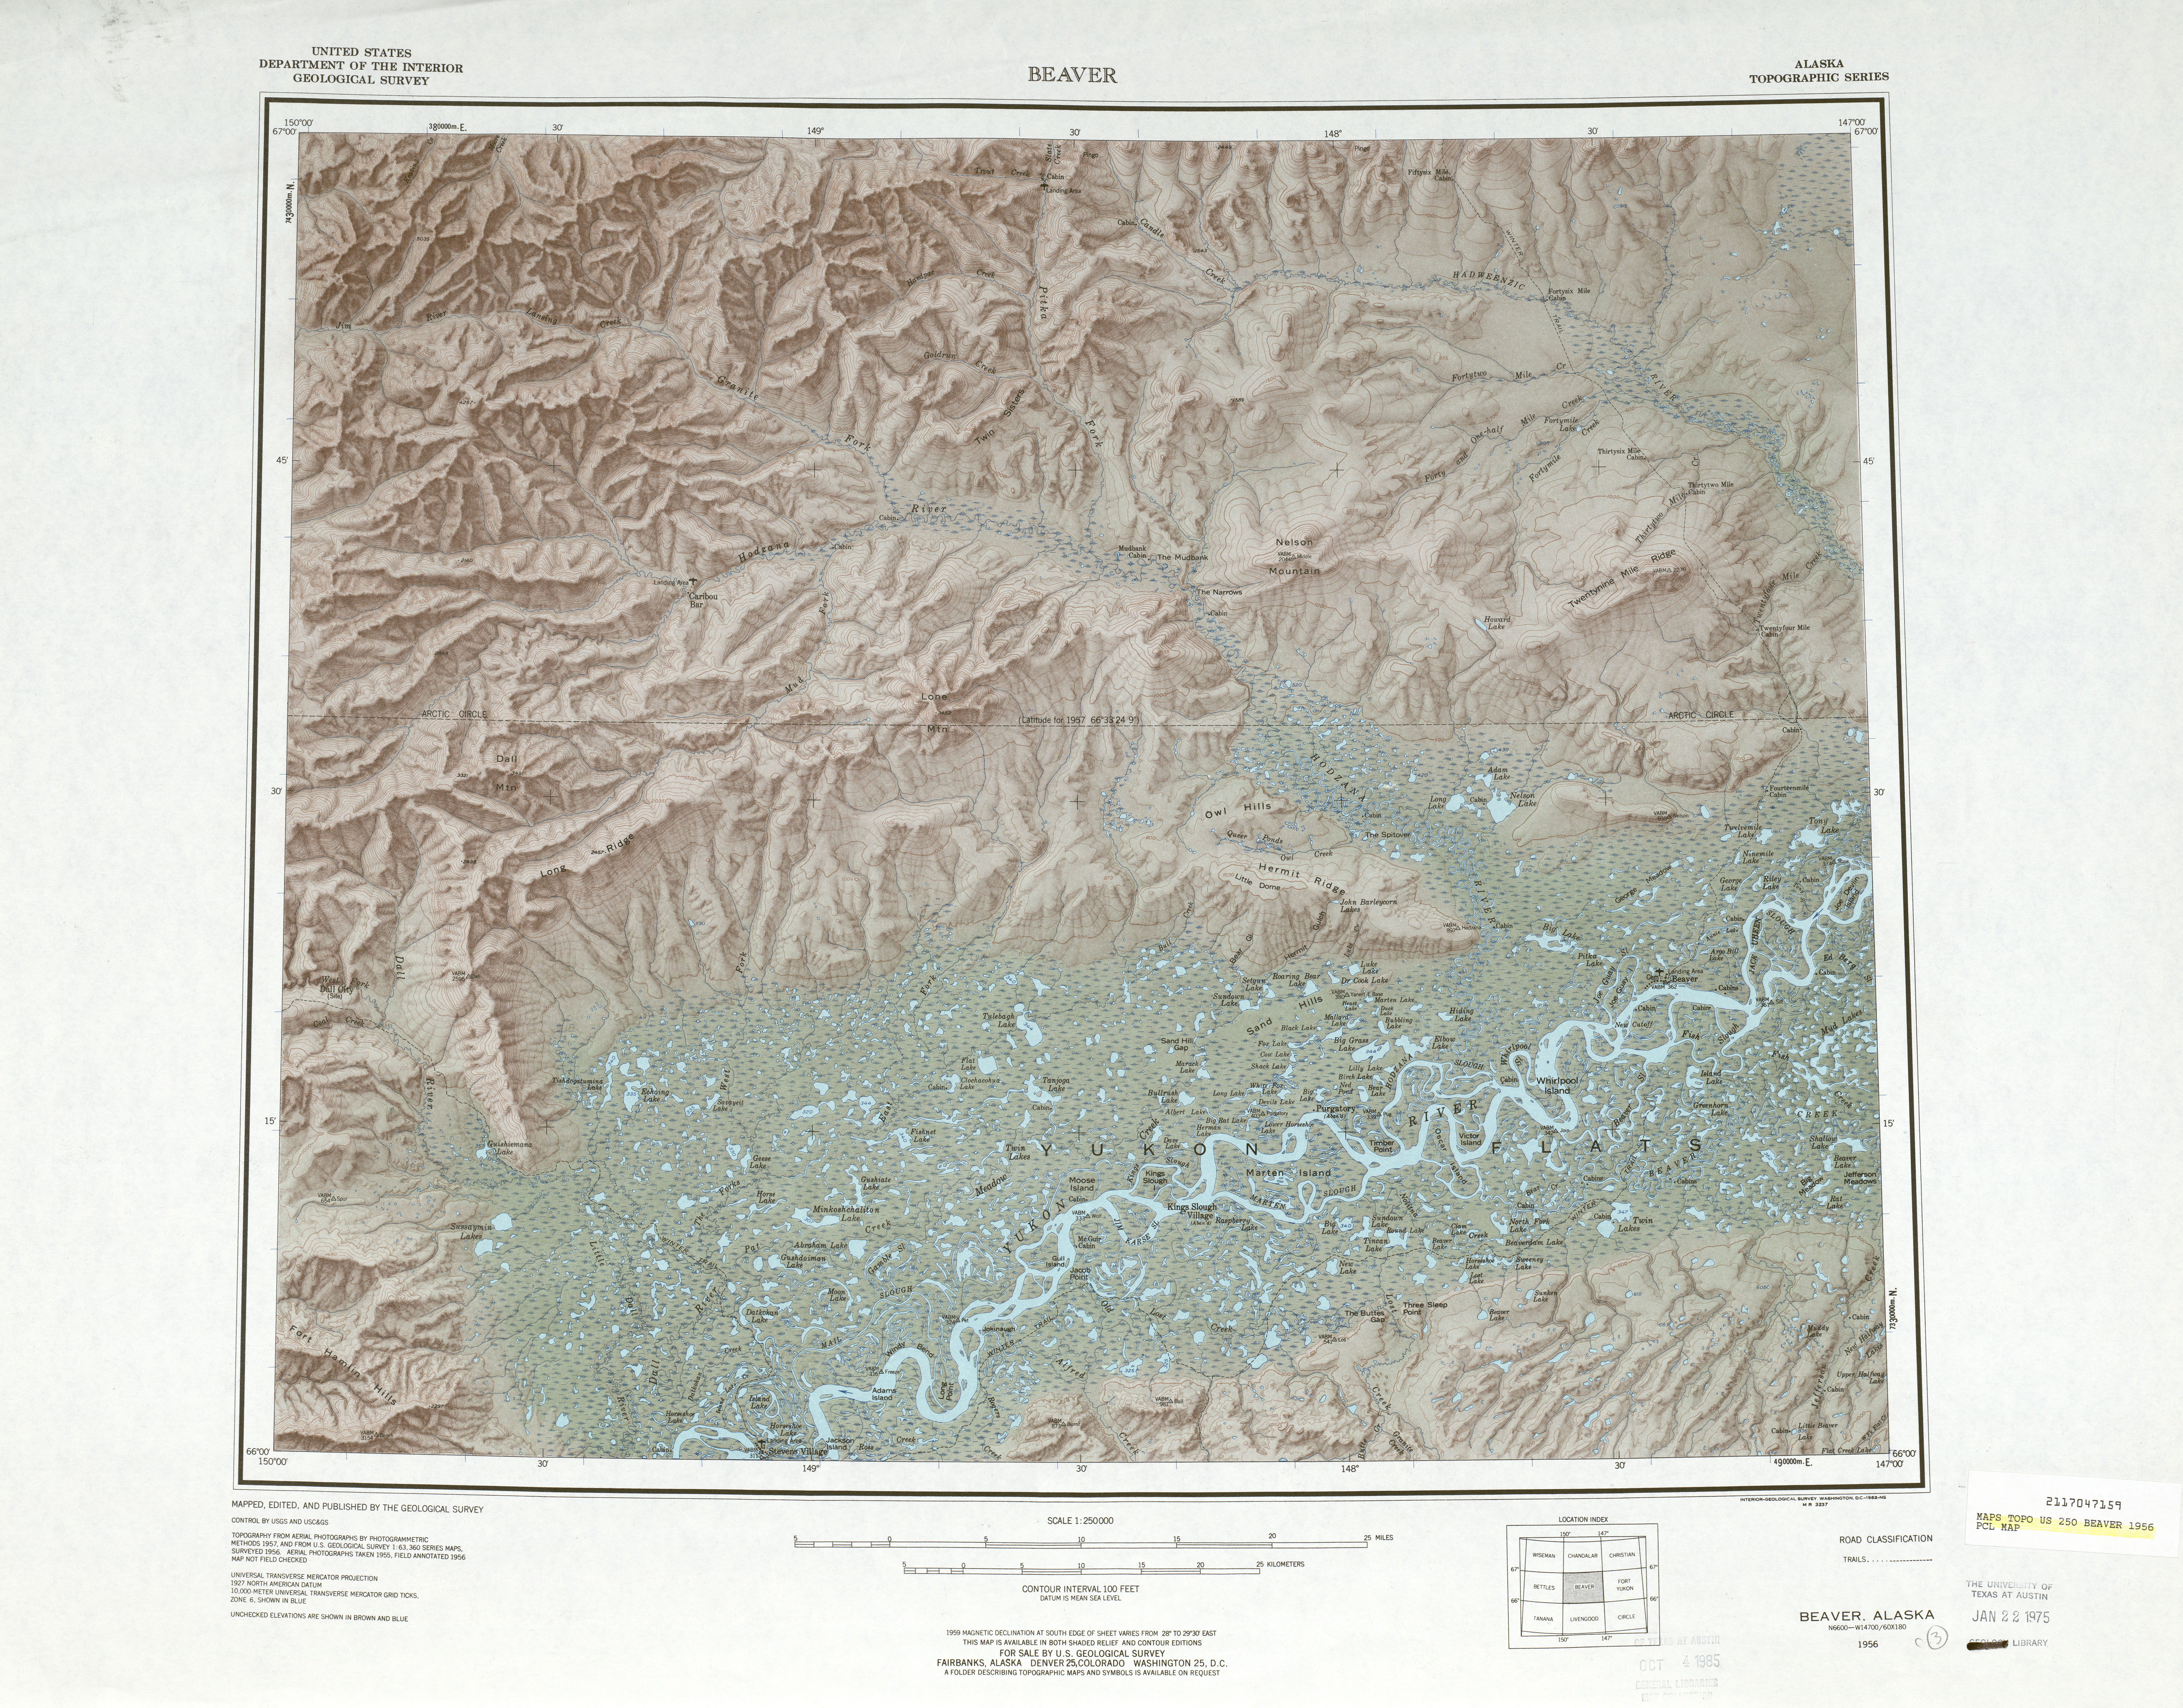 Beaver Shaded Relief Map Sheet, United States 1956